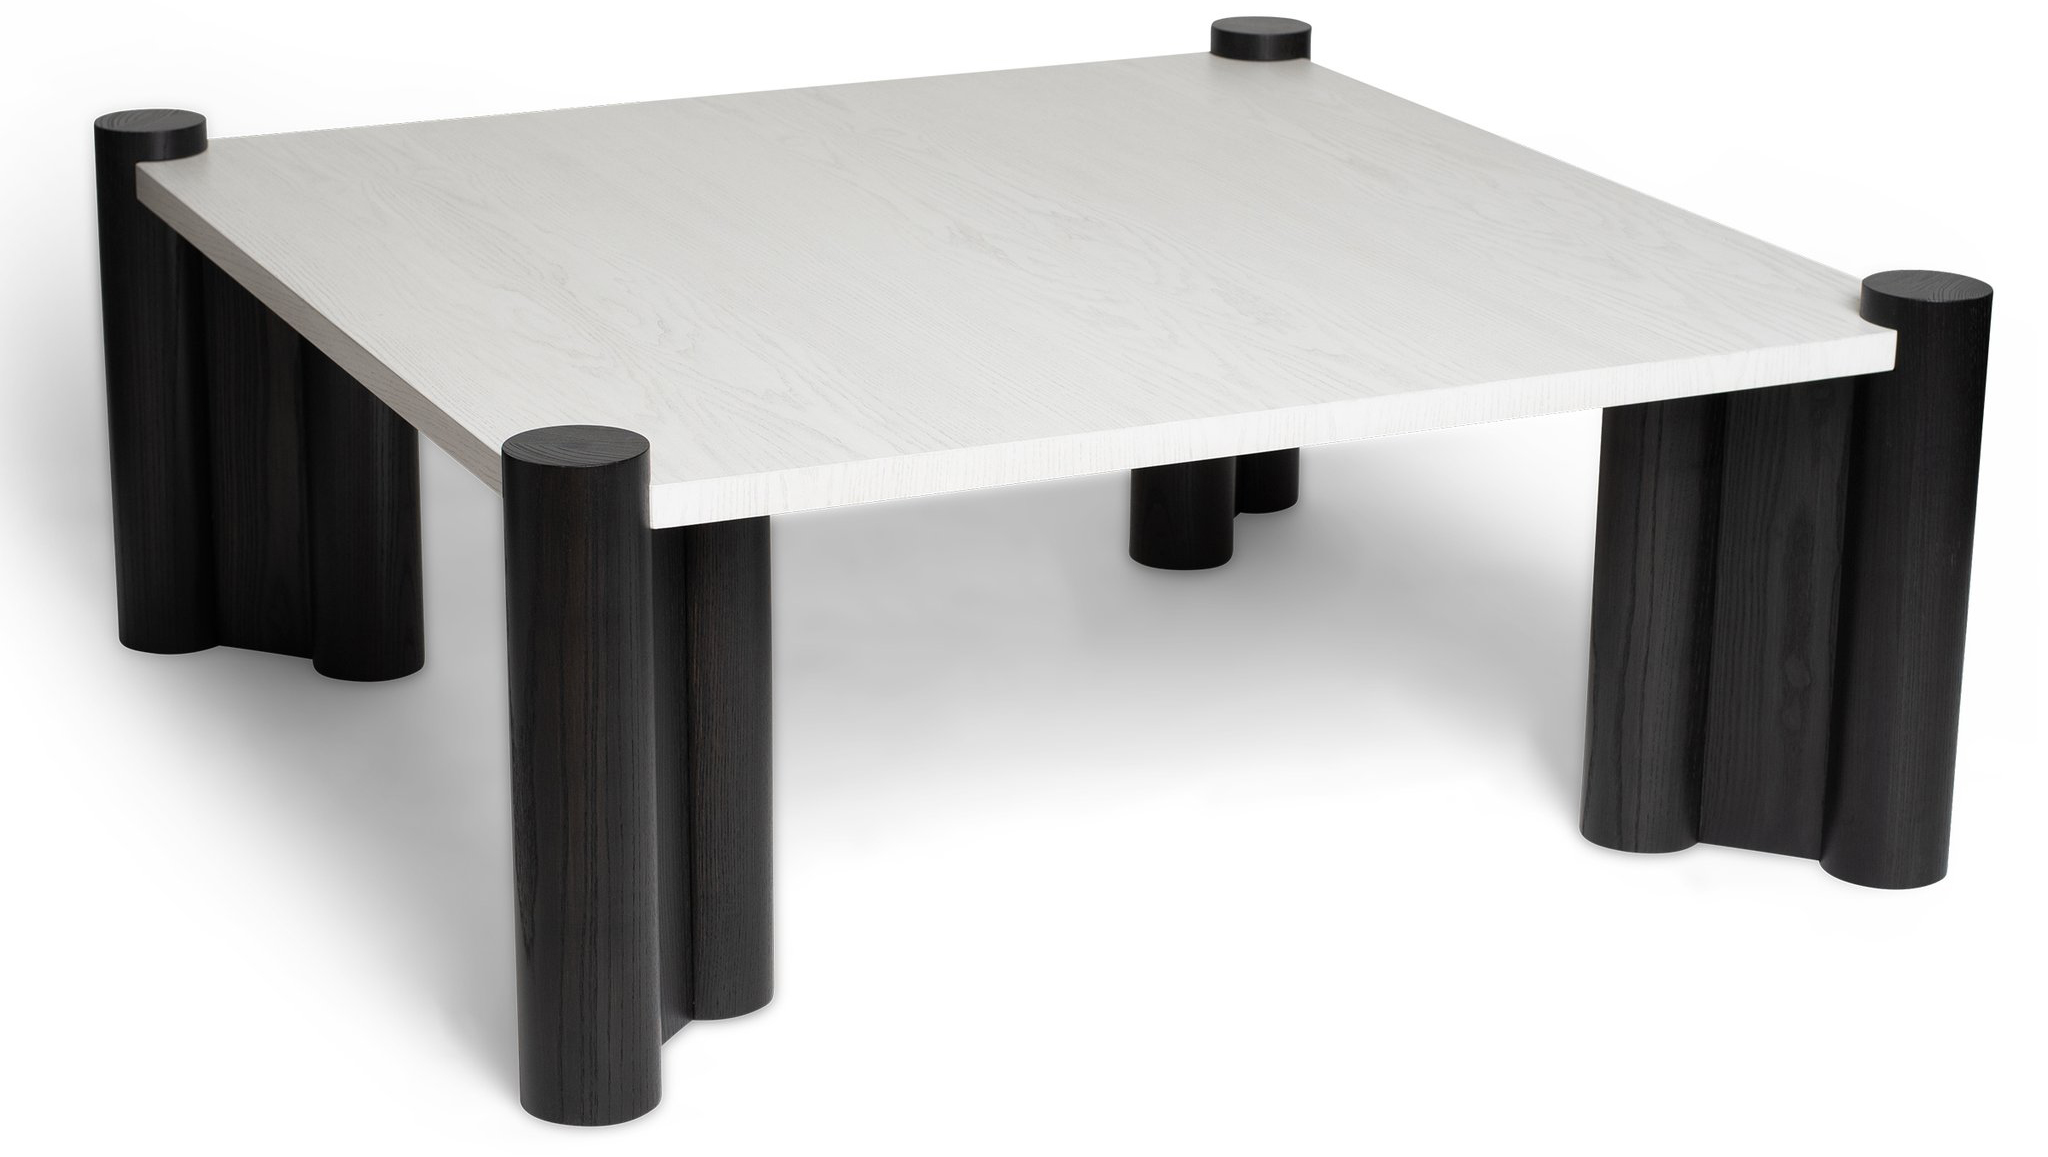 Samson Coffee Table with Pilaster Legs. Shown in Whistler White on Ash (top finish) and Ebony on Ash (base finish). Top finish can be customized with anyBRADLEYconcrete,ColorGlass, antiqued mirror, resine, or wood finish. Base finish can be customized with any BRADLEY wood finish. Lead time: 8-10 weeks.